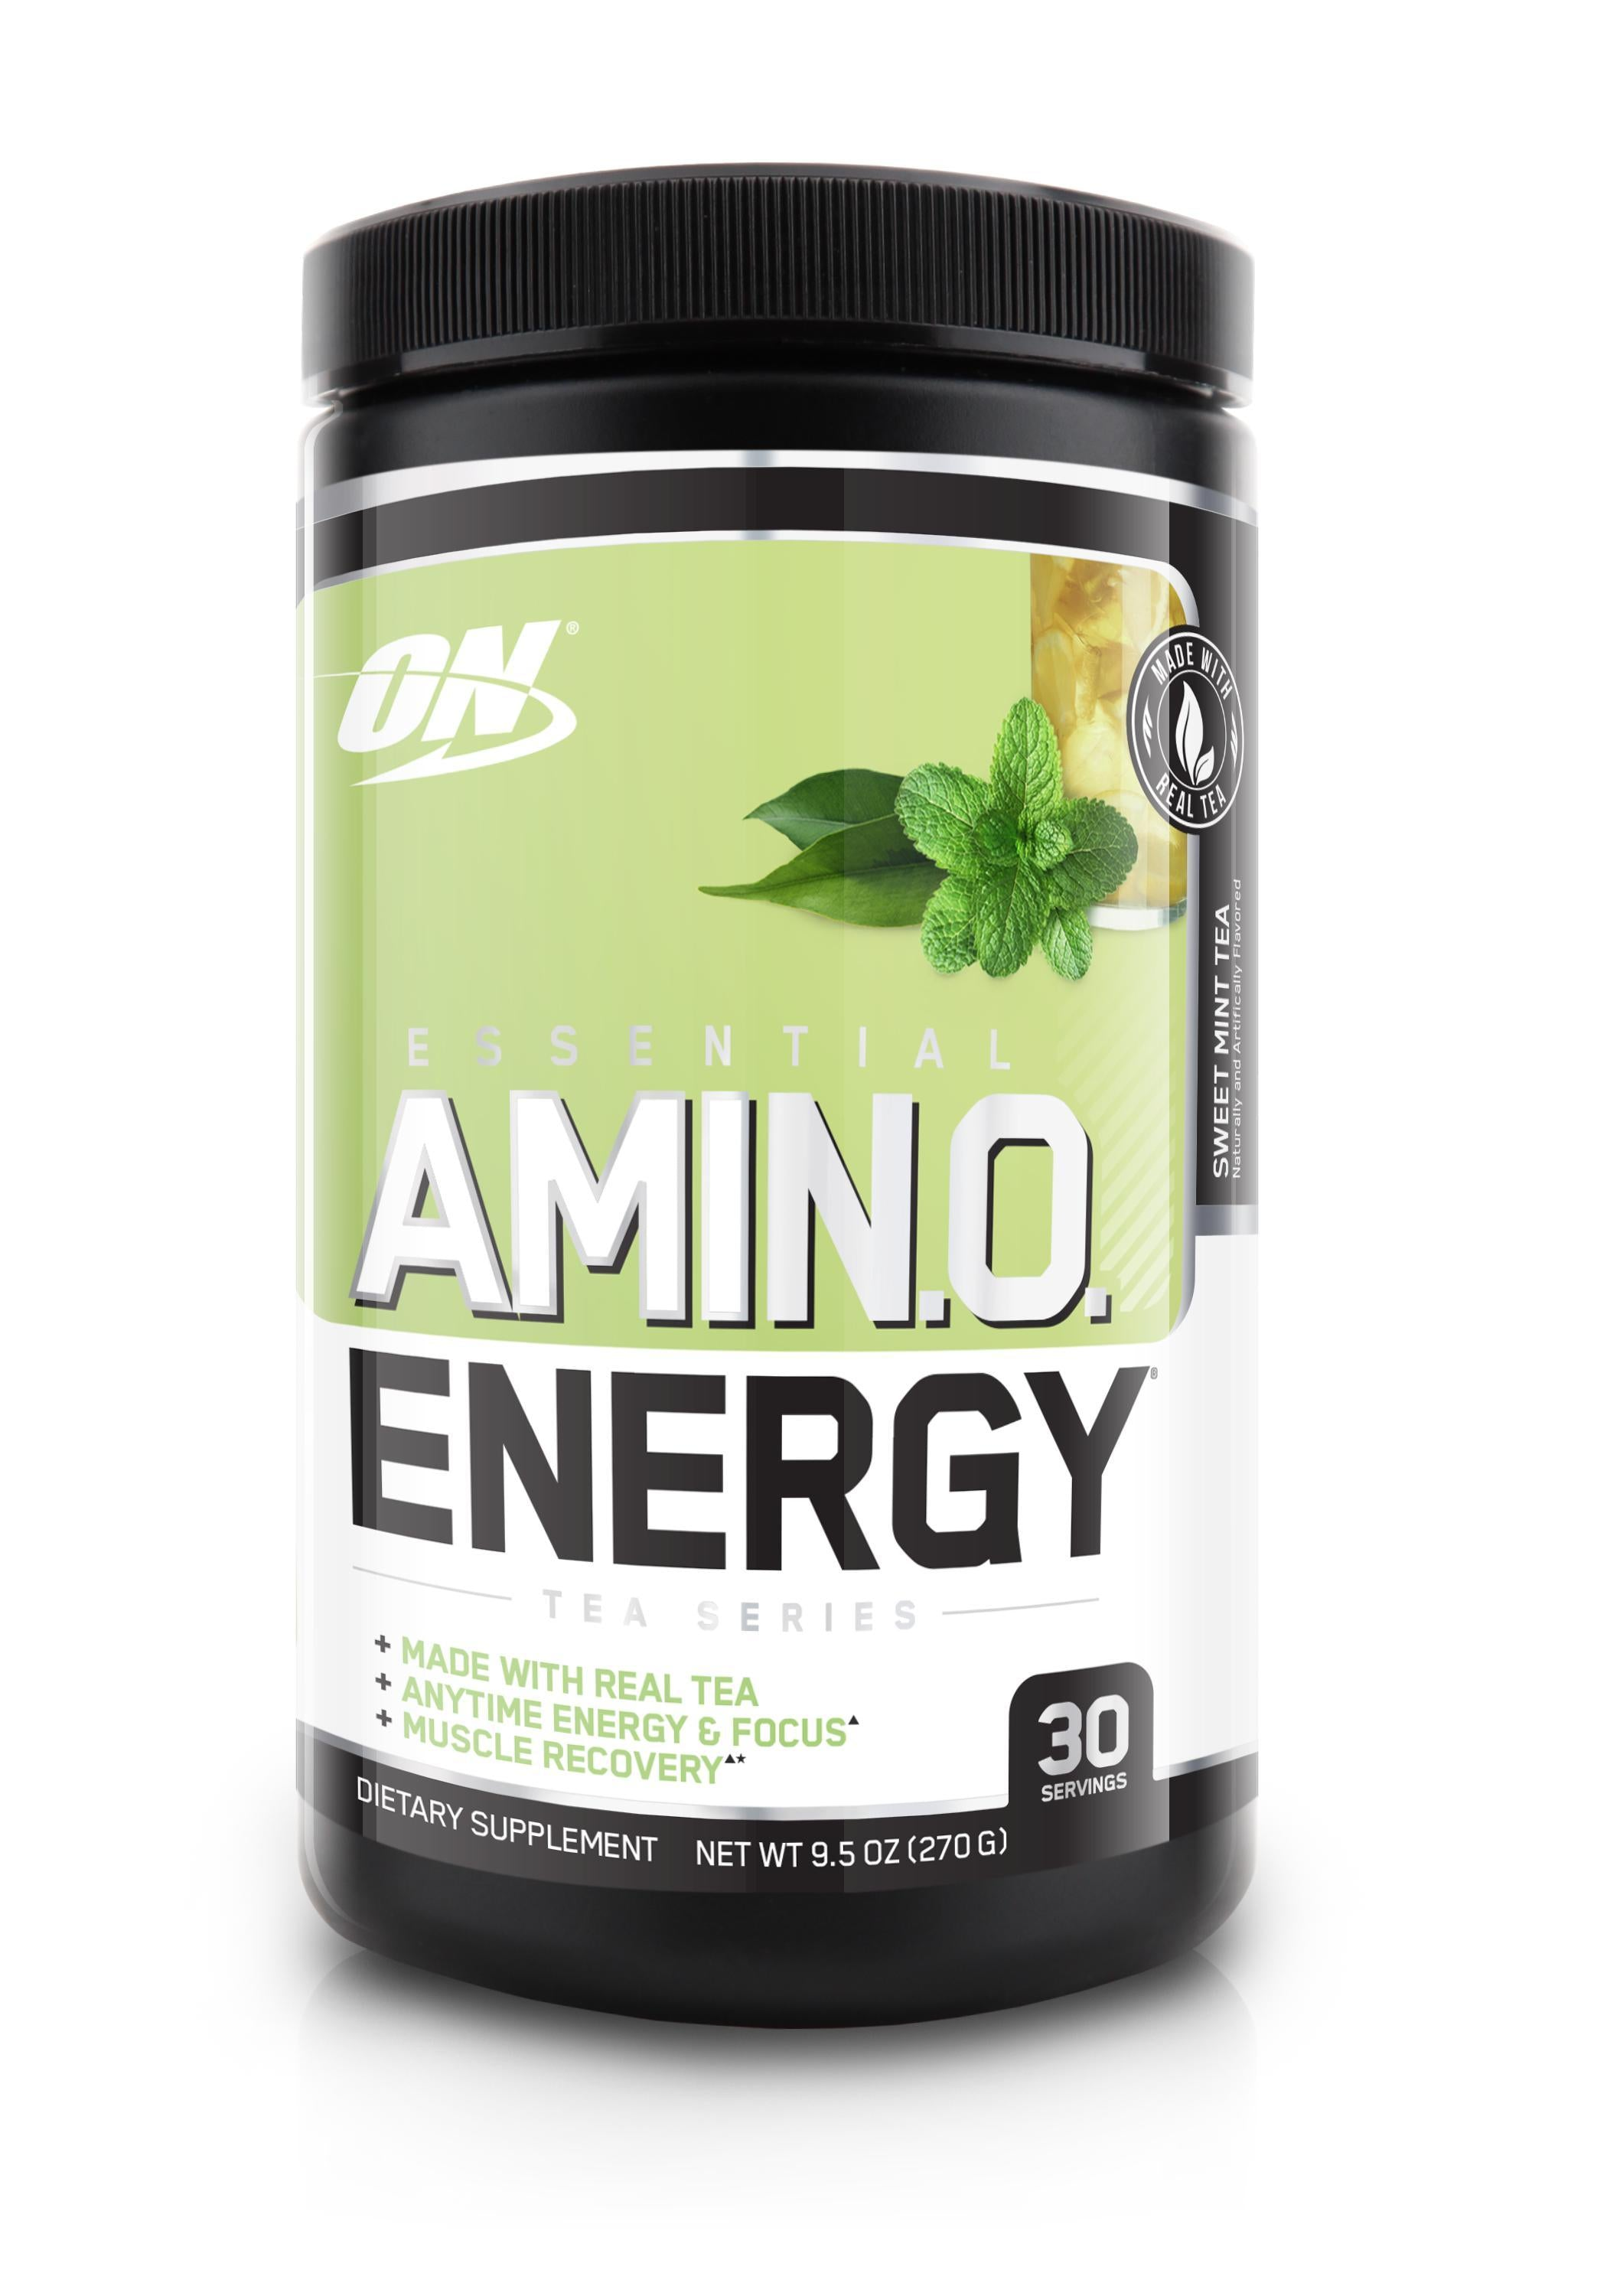 ON Essential Amino Energy Tea Series-Sports Nutrition - Amino Acid-Optimum Nutrition-30 Serves-Sweet Mint Tea-Thrive Health and Nutrition